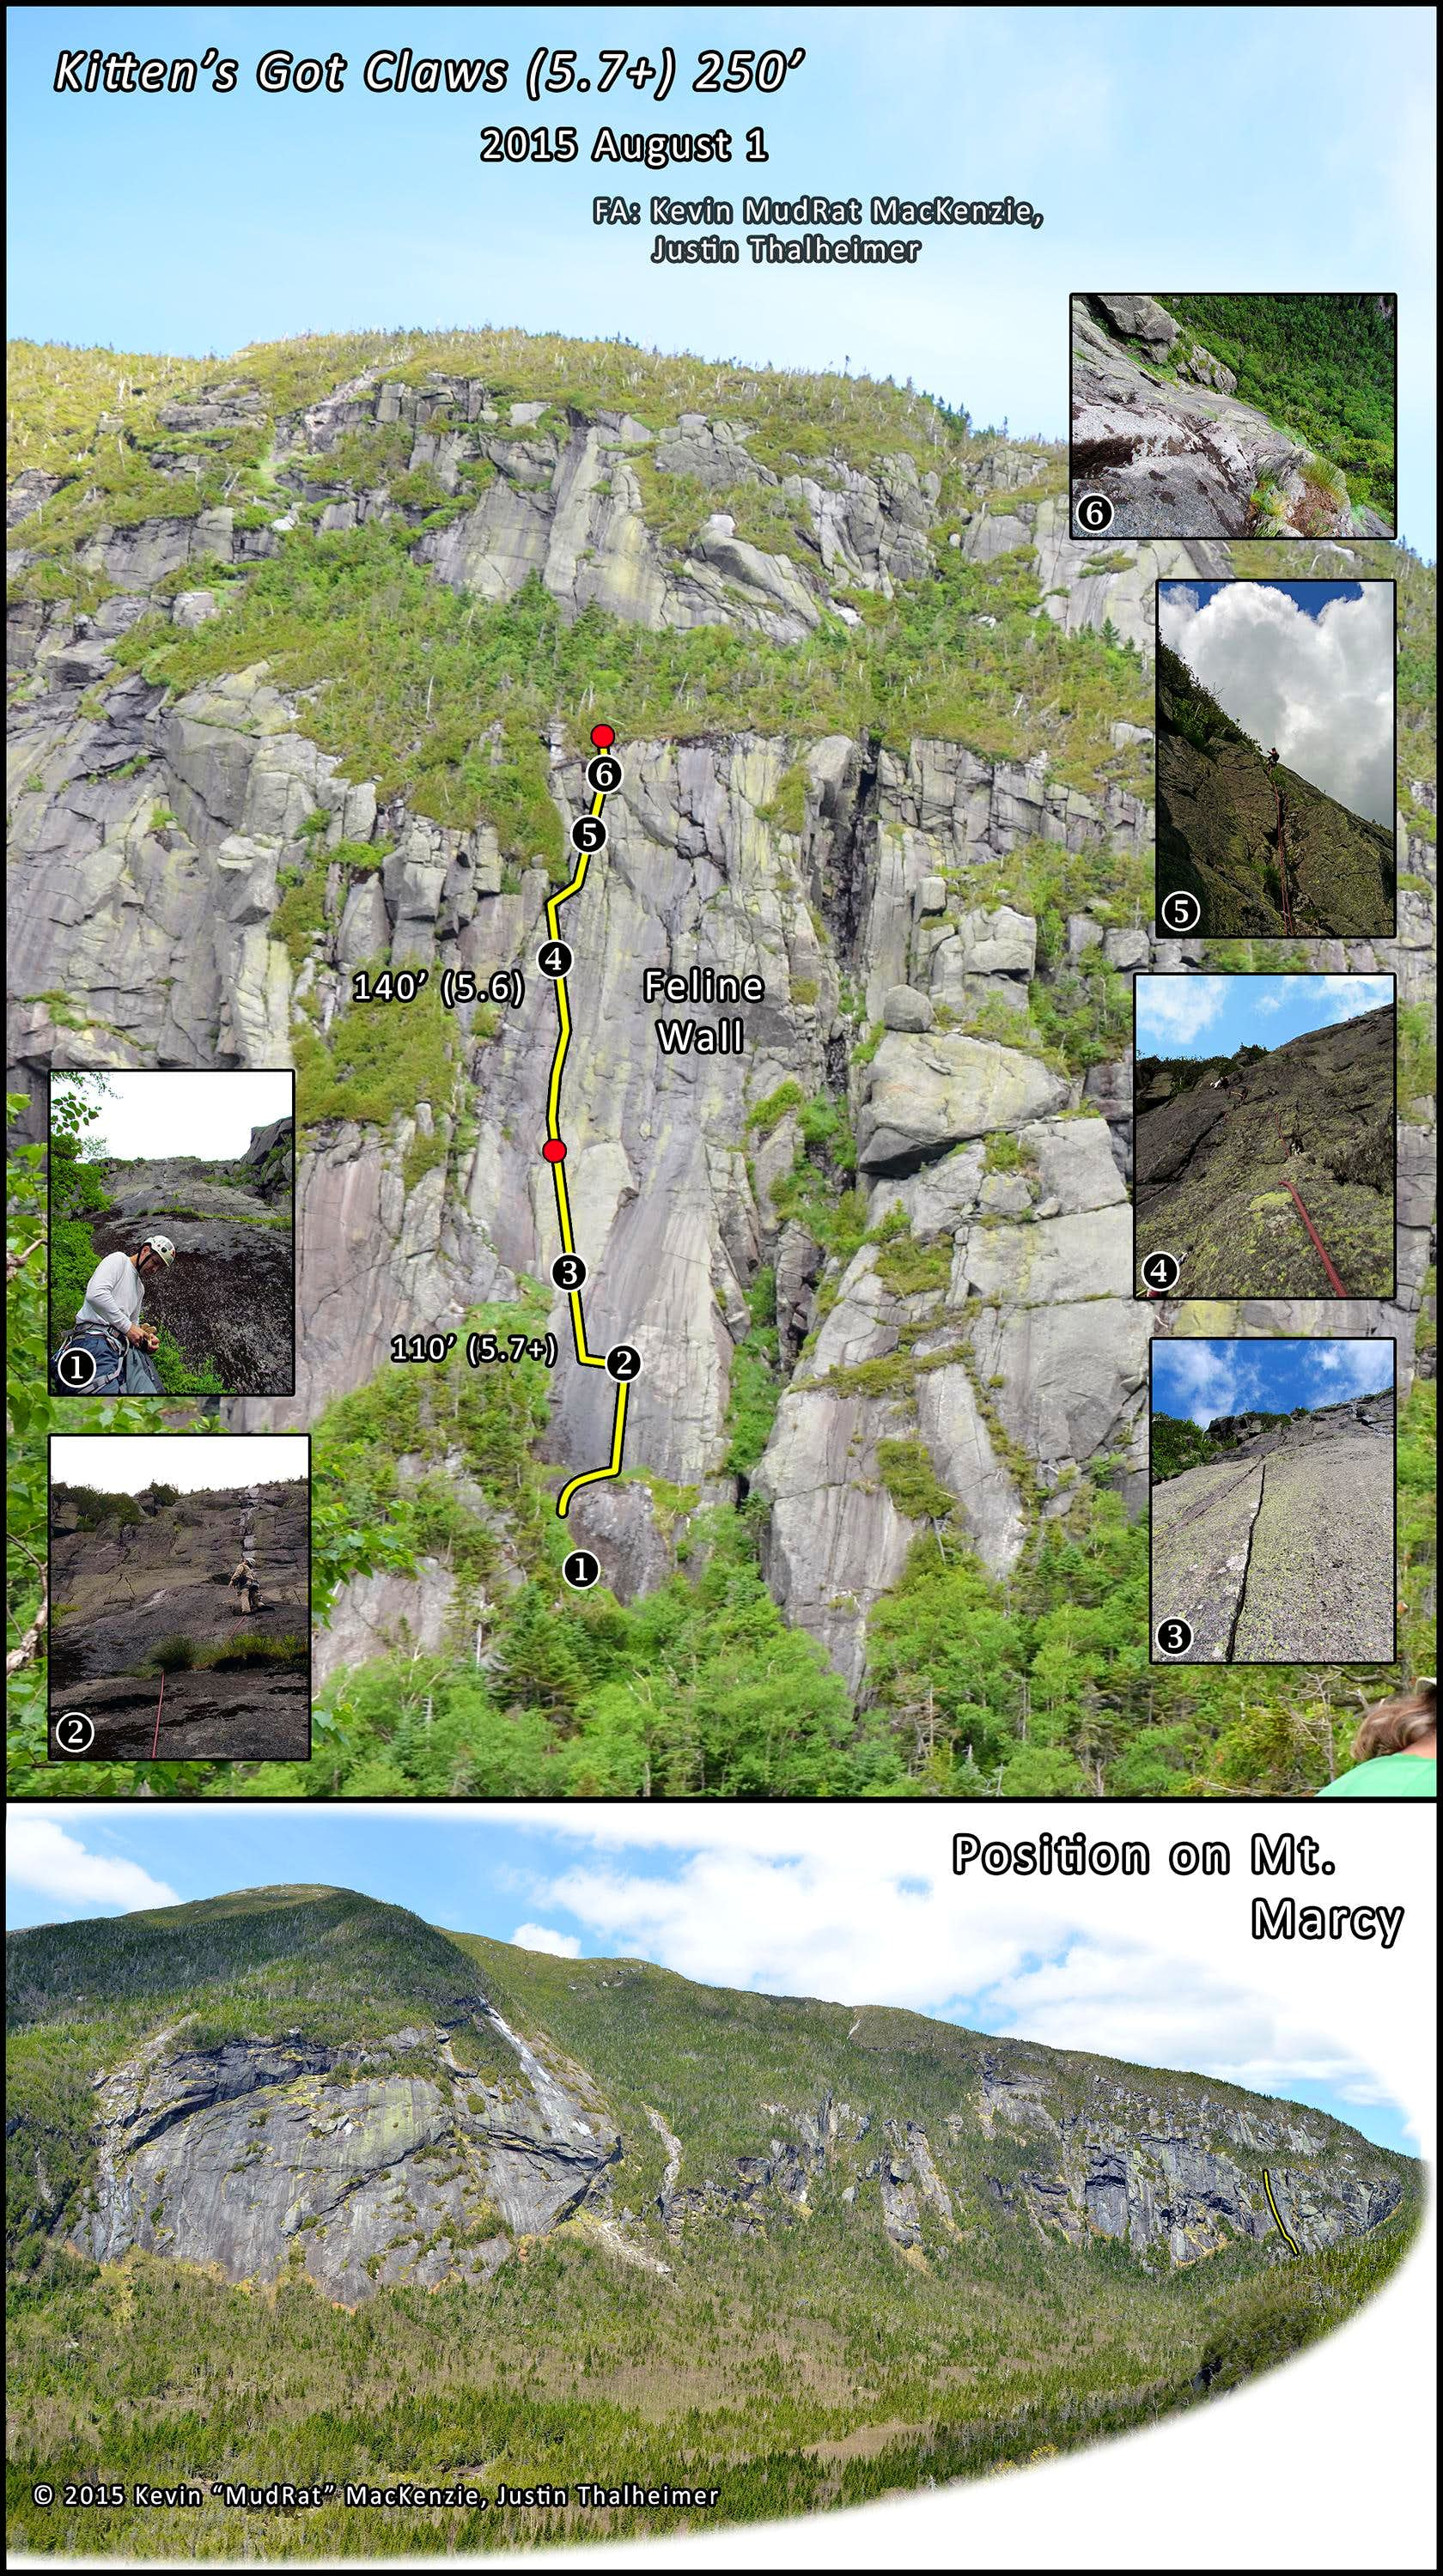 Panther Gorge-A New Marcy Route (Kitten\'s Got Claws) 2015  August 1